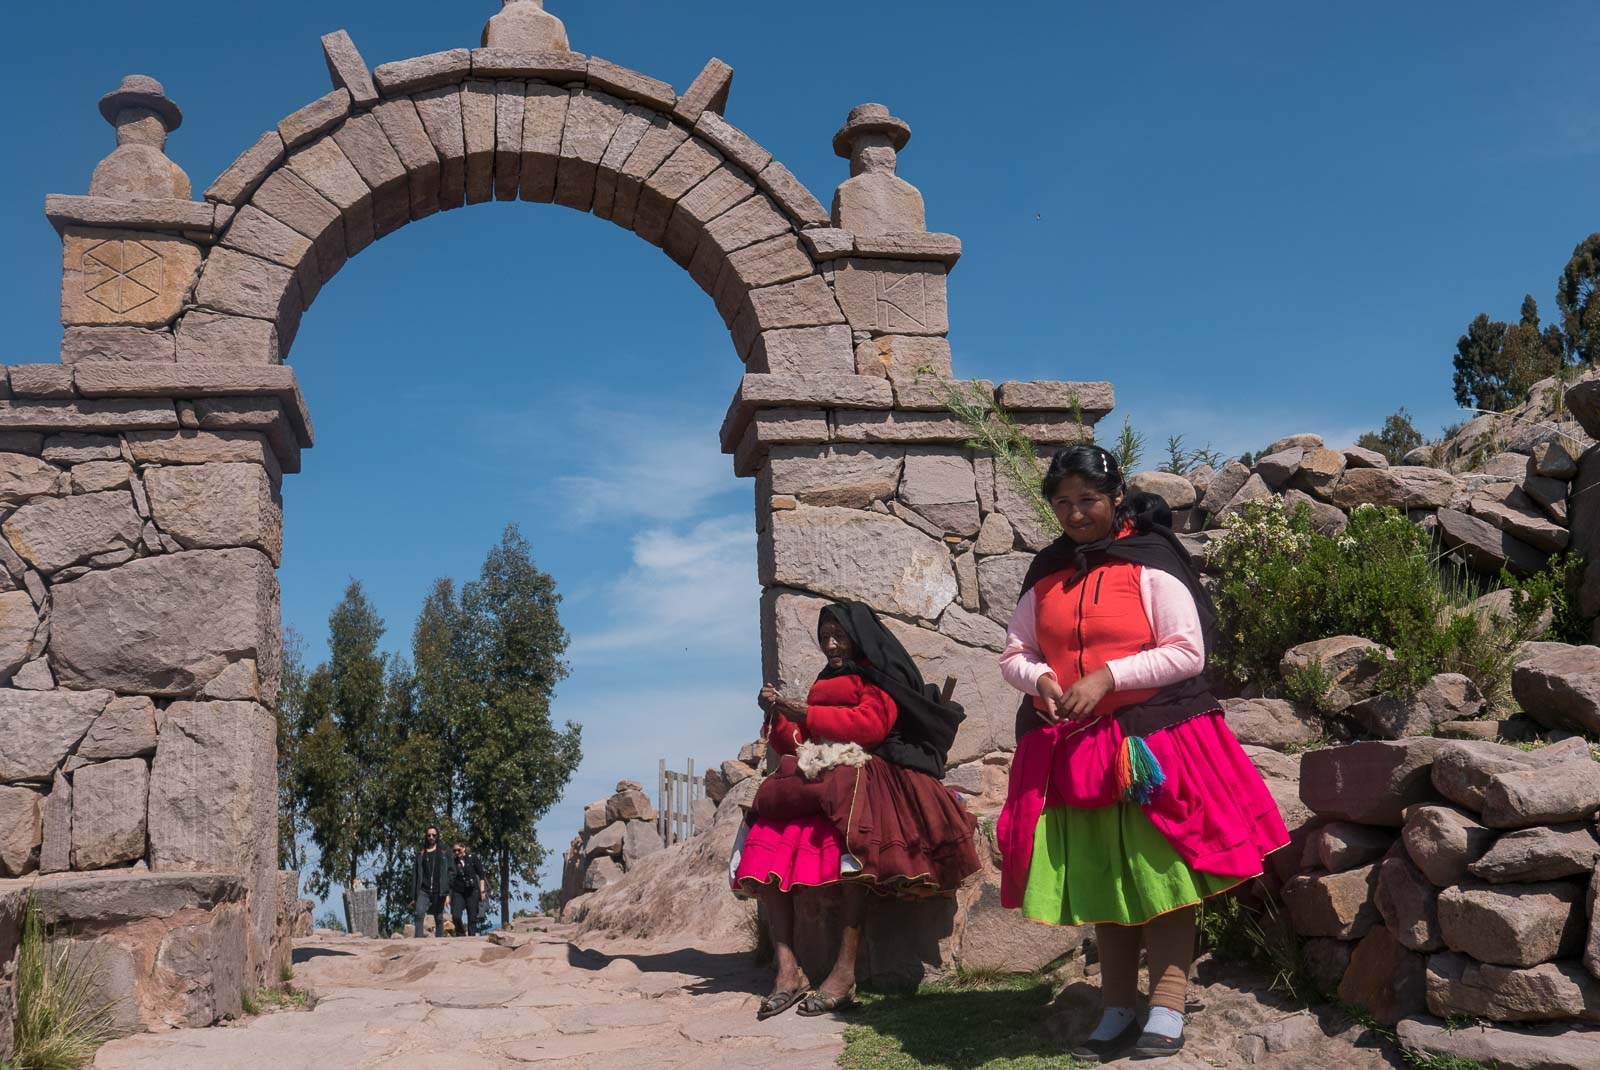 Two local women, in traditional bright skirts at a stone arch on Taquile Island.